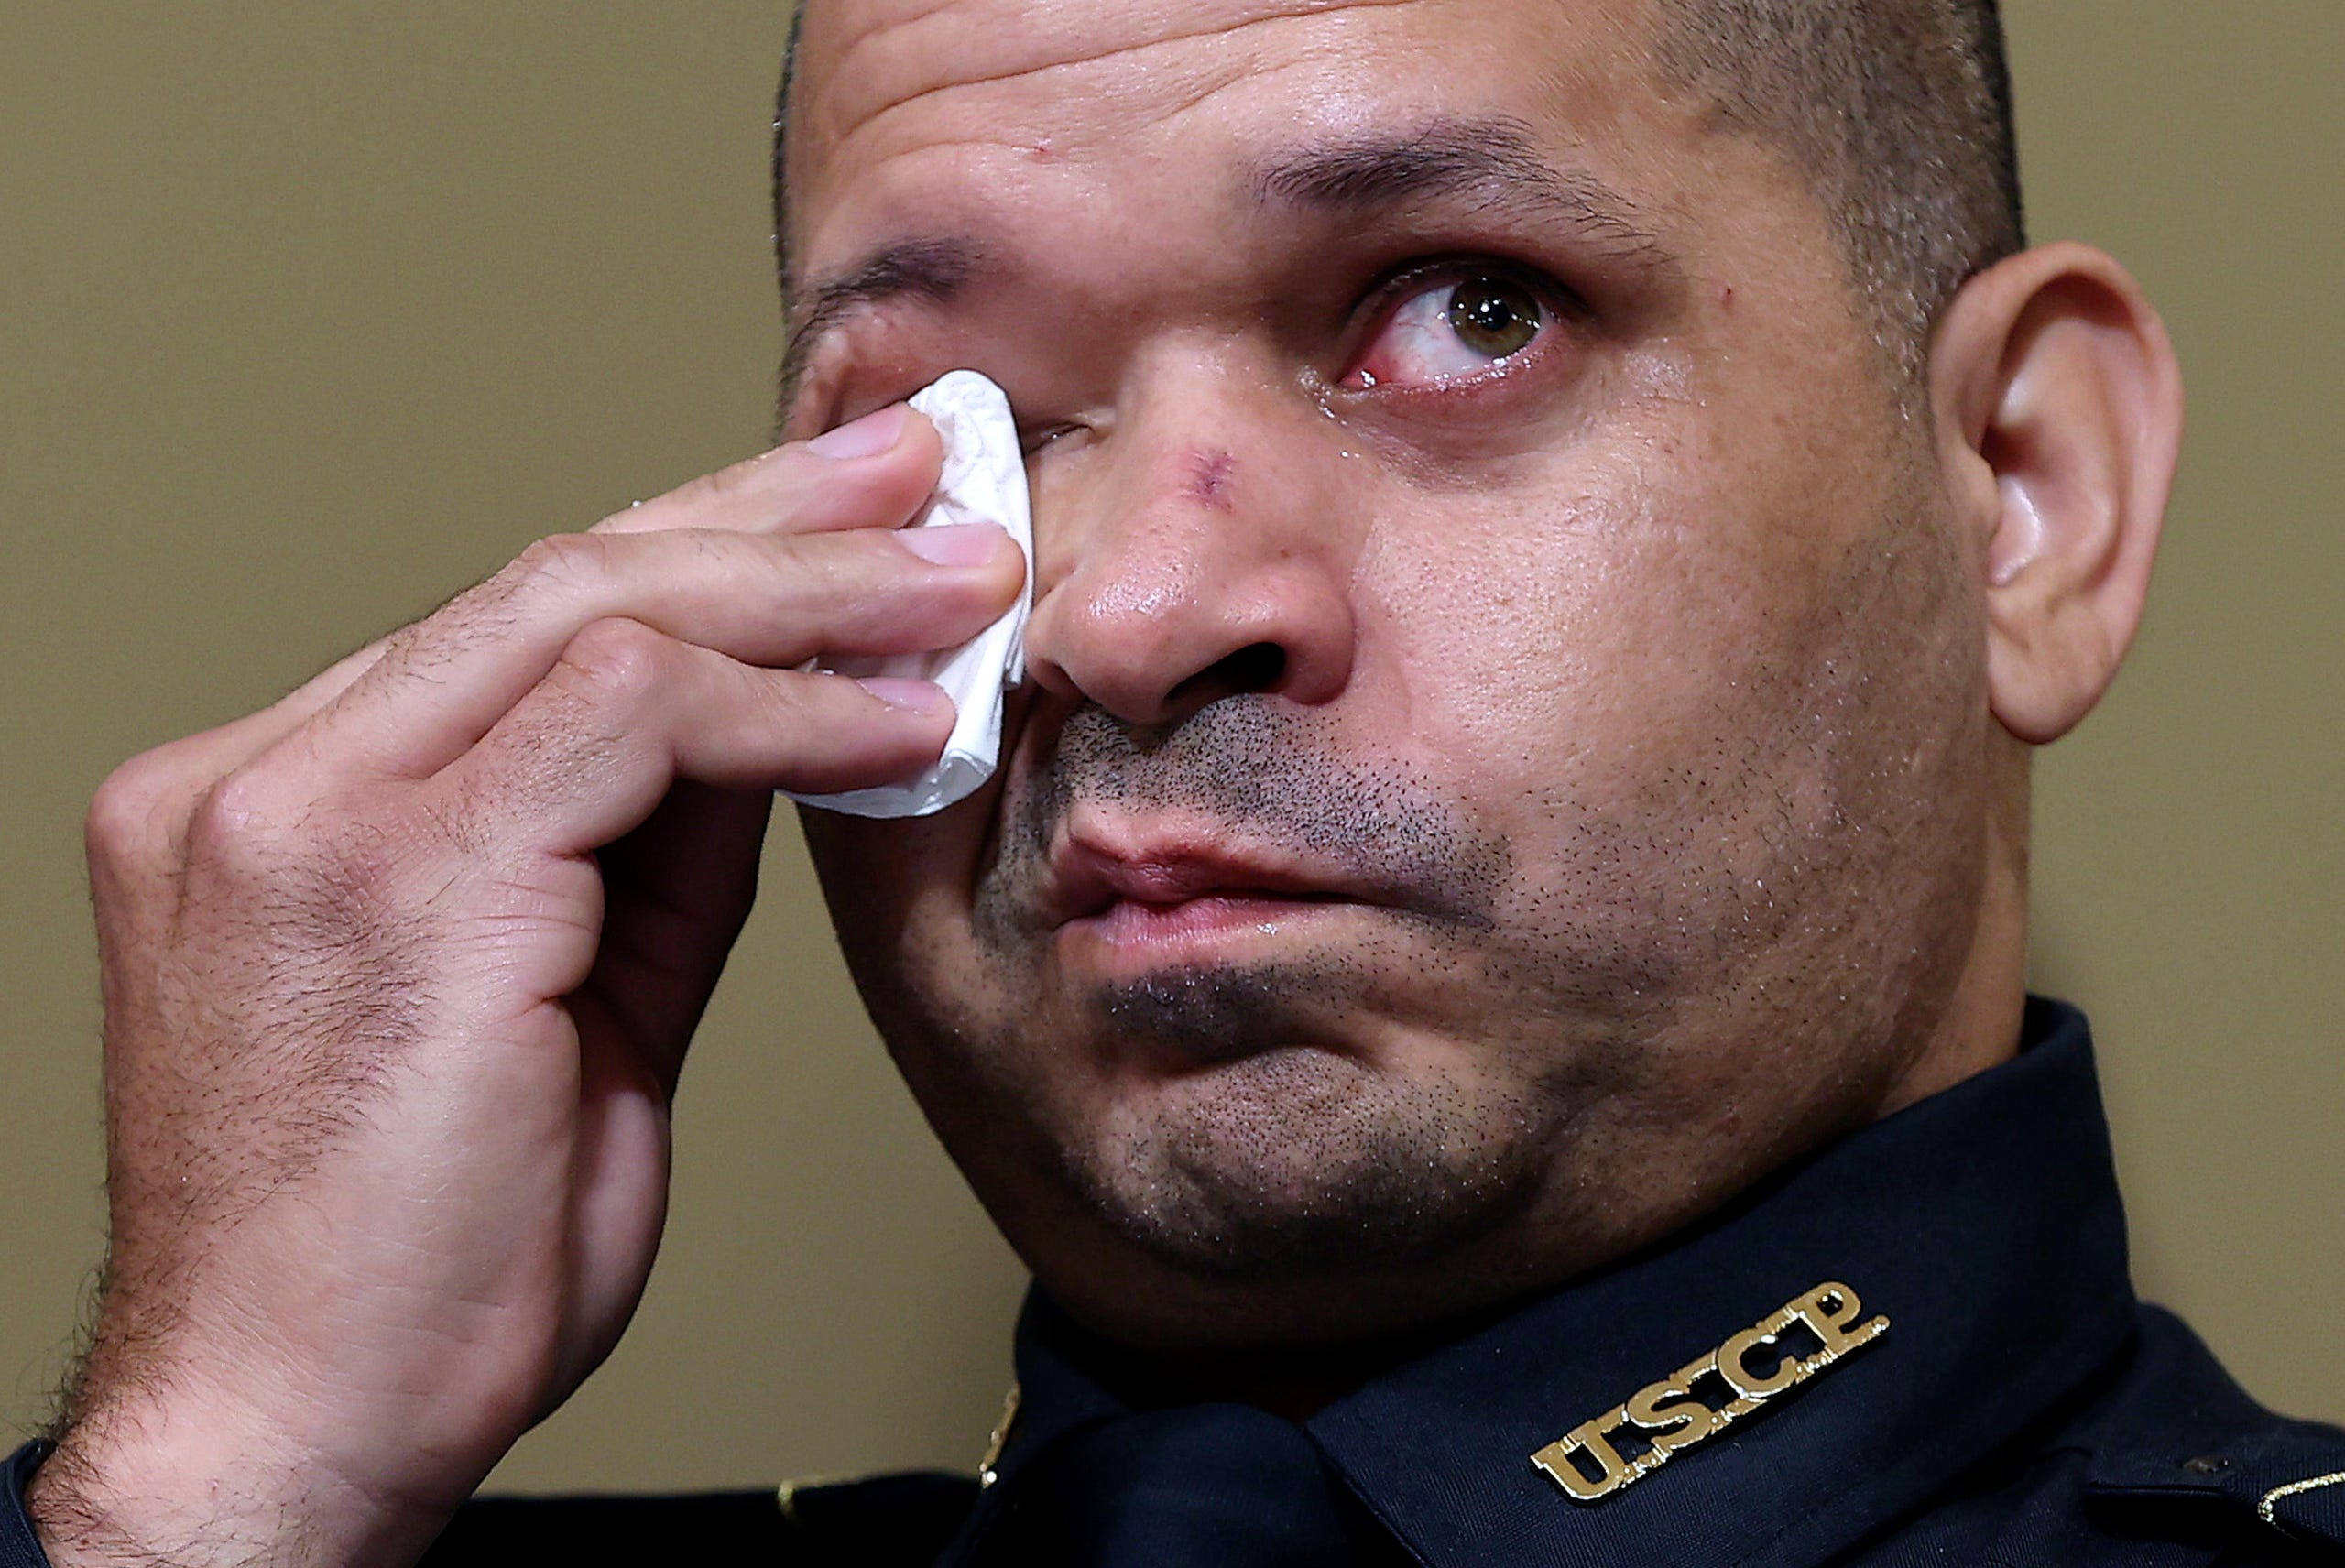 U.S. Capitol Police officer Sgt. Aquilino Gonell